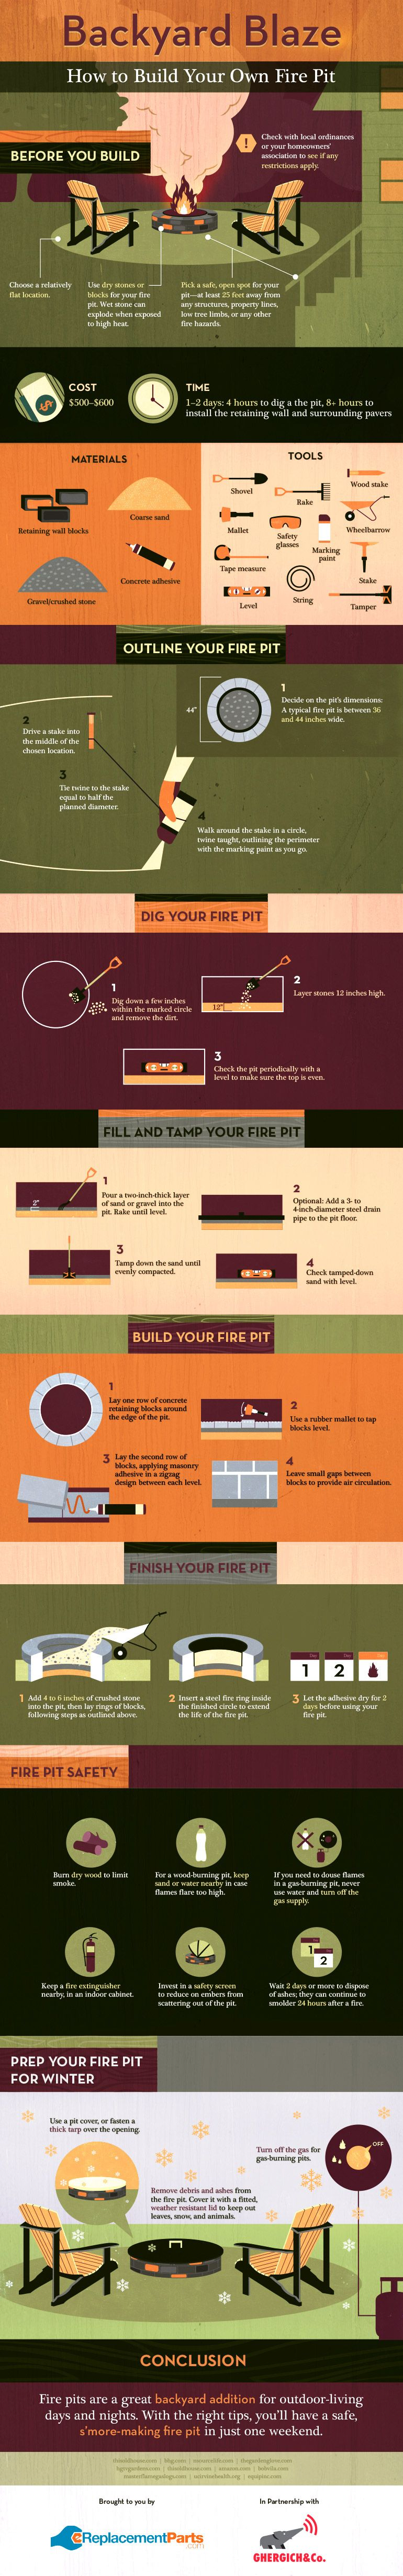 backyard blaze how to build your own fire pit outdoors http